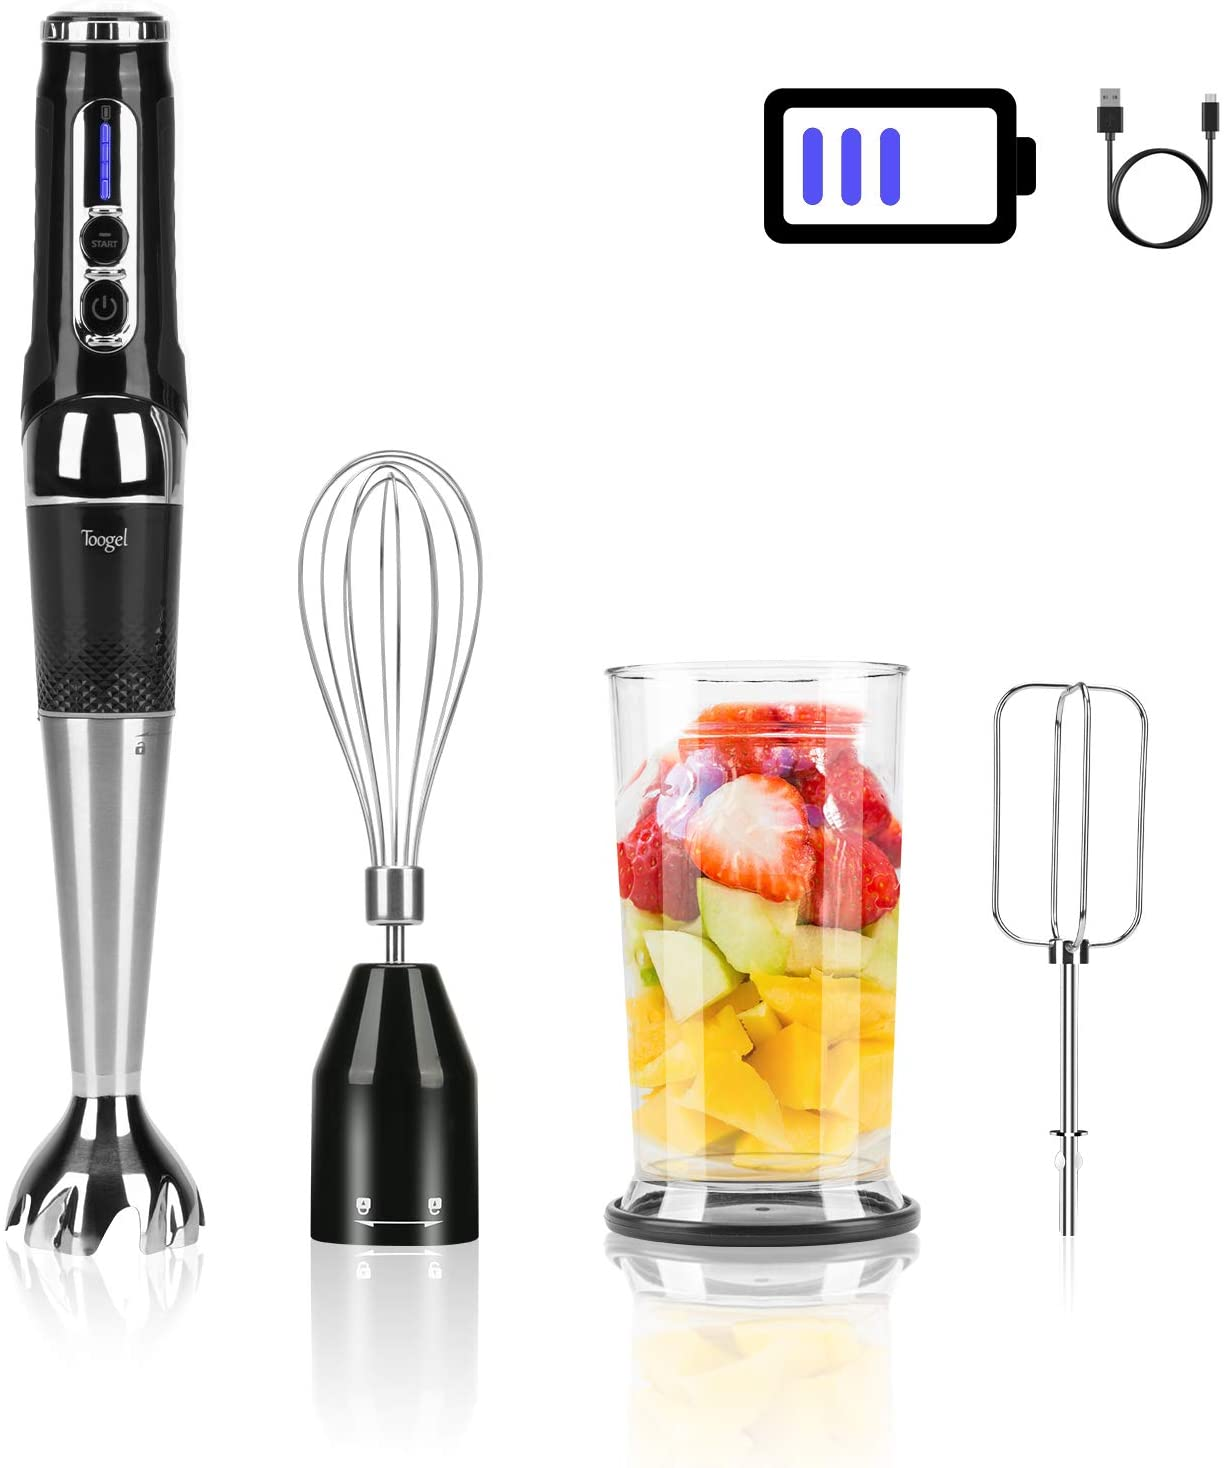 Cordless Hand Blender Rechargeable, Powerful Variable Speed Control with 21-Speed Immersion Stick Blender , Portable Electric Hand Mixer